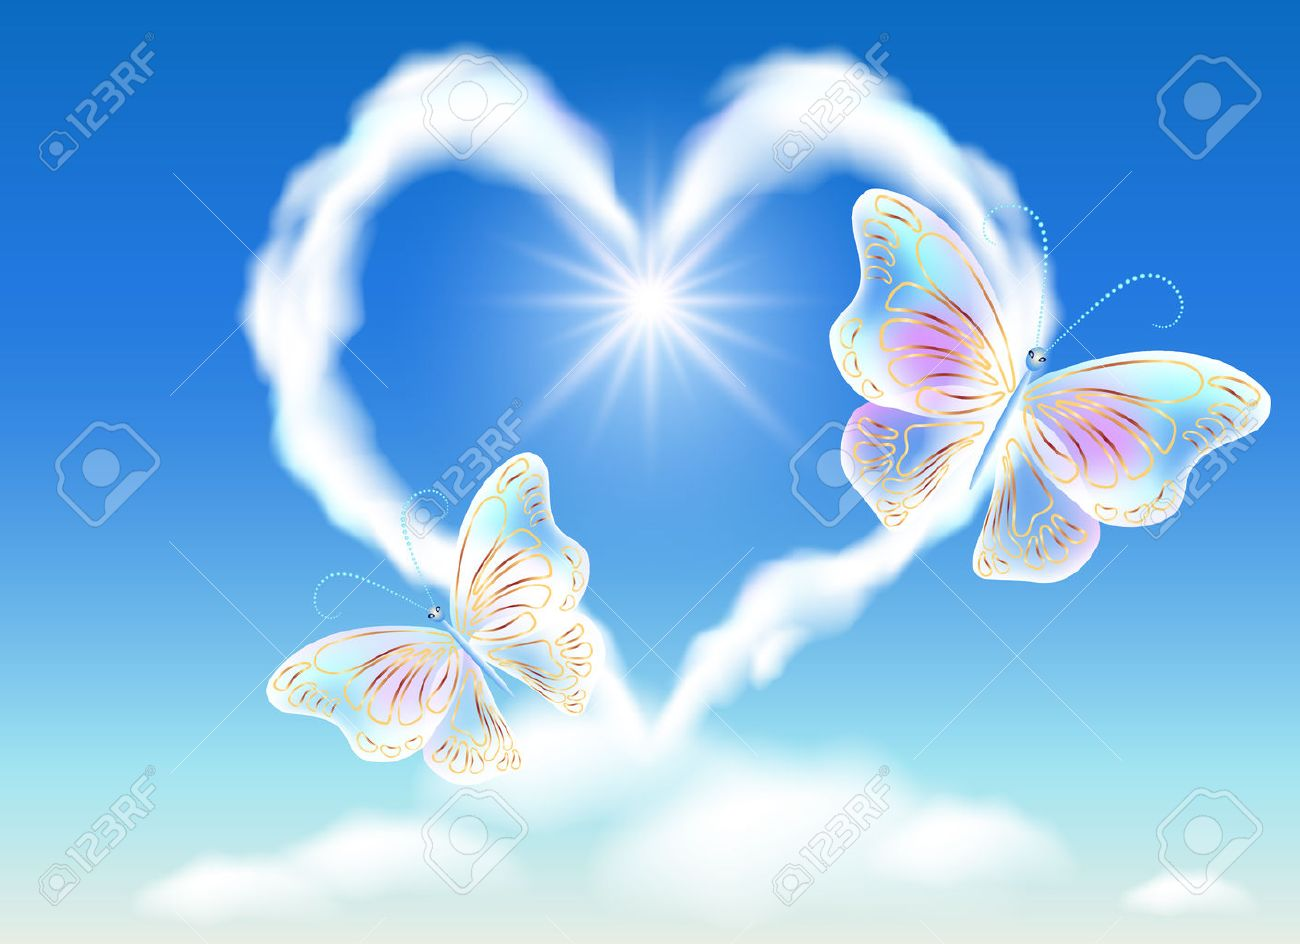 Cloud heart in the sky and transparent butterflies - 52480044